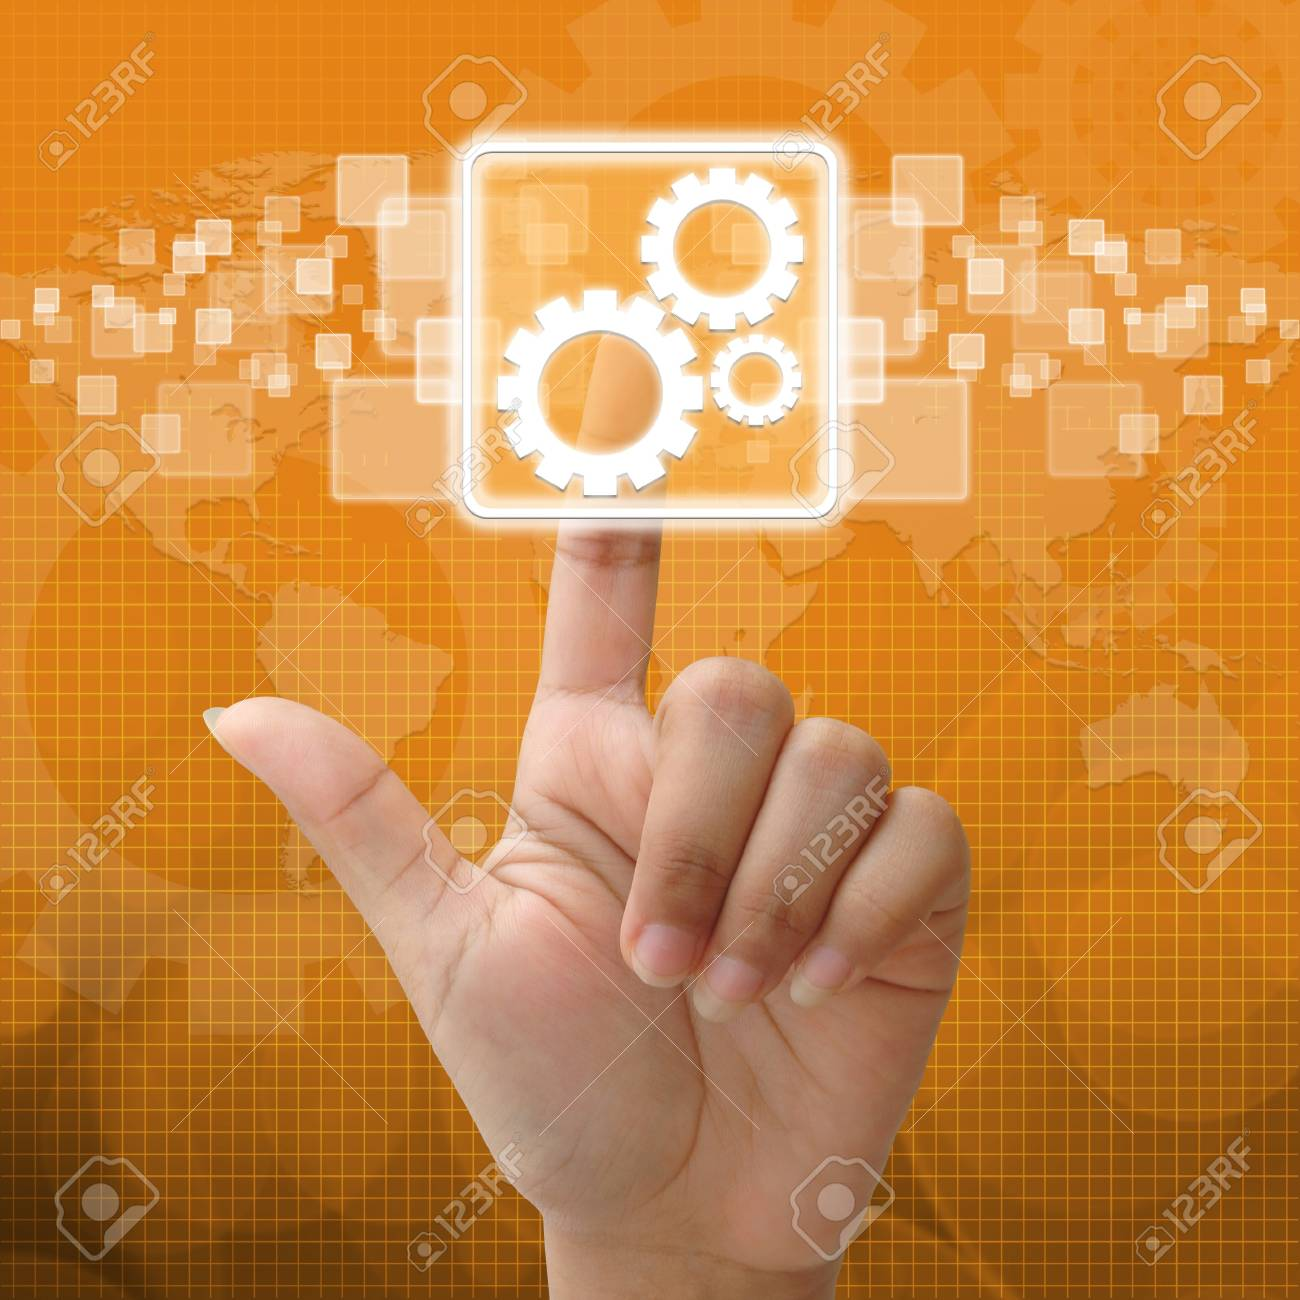 In press team work symbol for business concept Stock Photo - 15917090